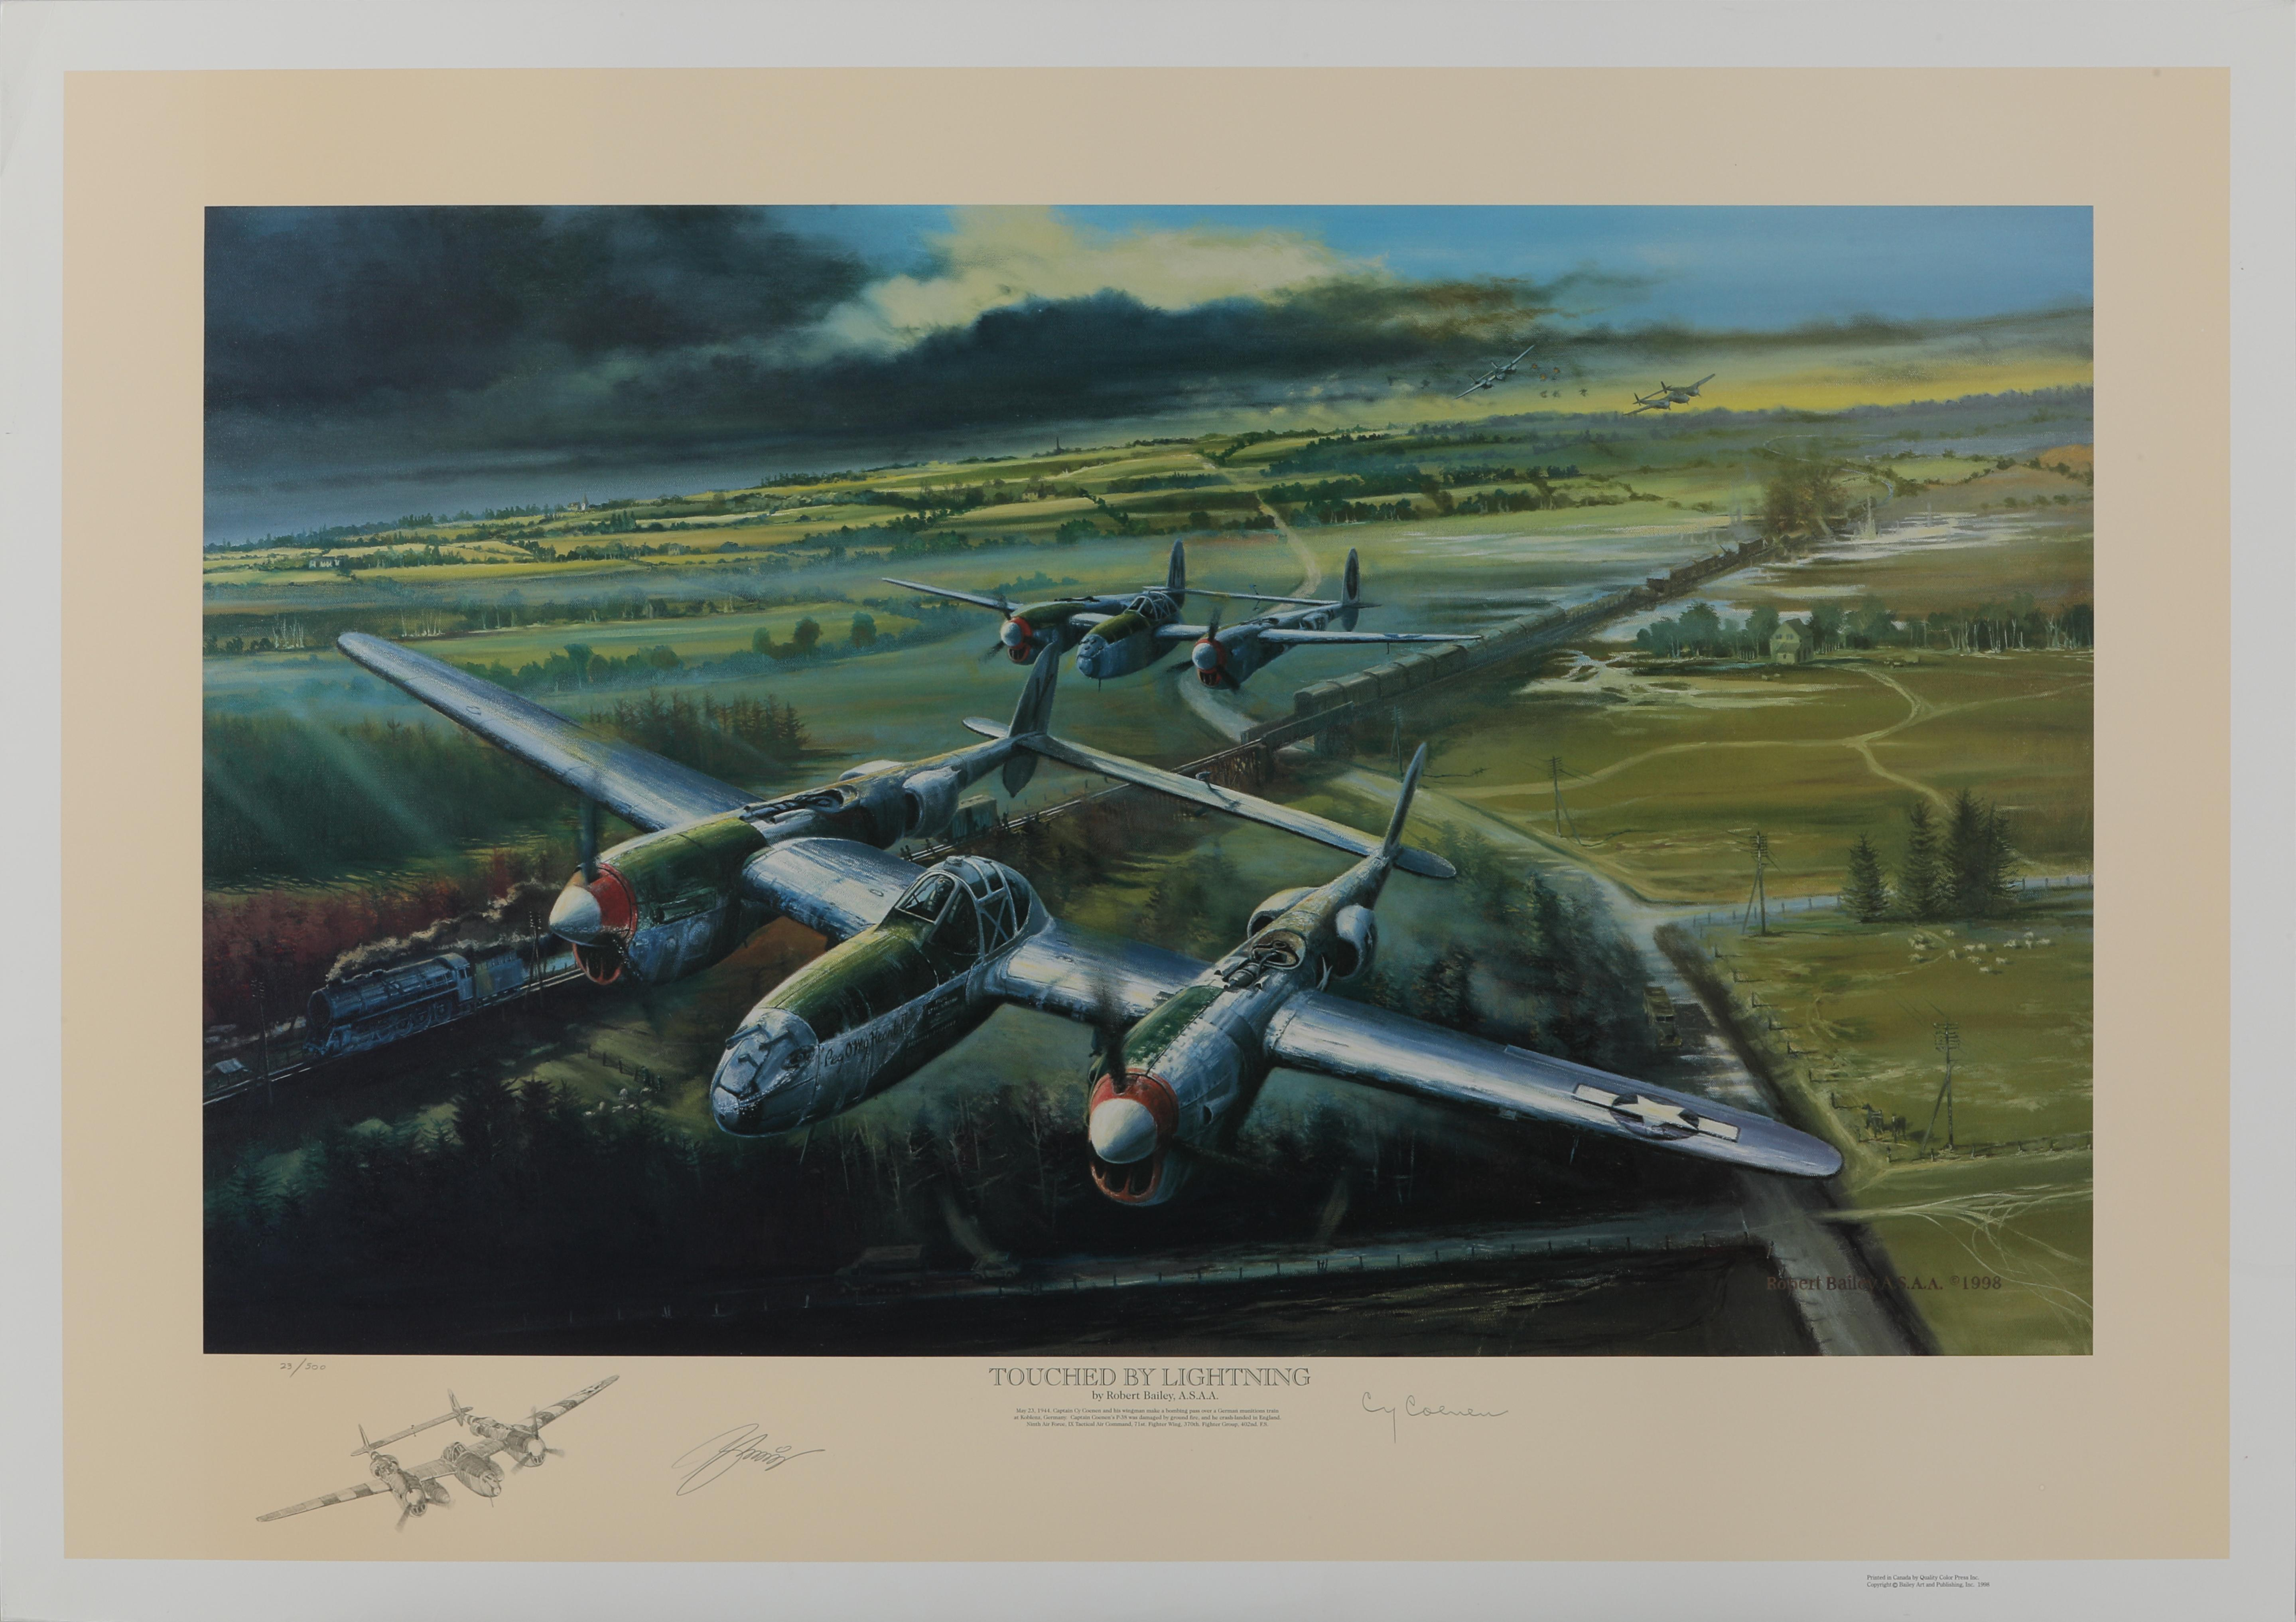 """Robert Bailey's """"Touched by Lightning"""" Limited Edition Print"""